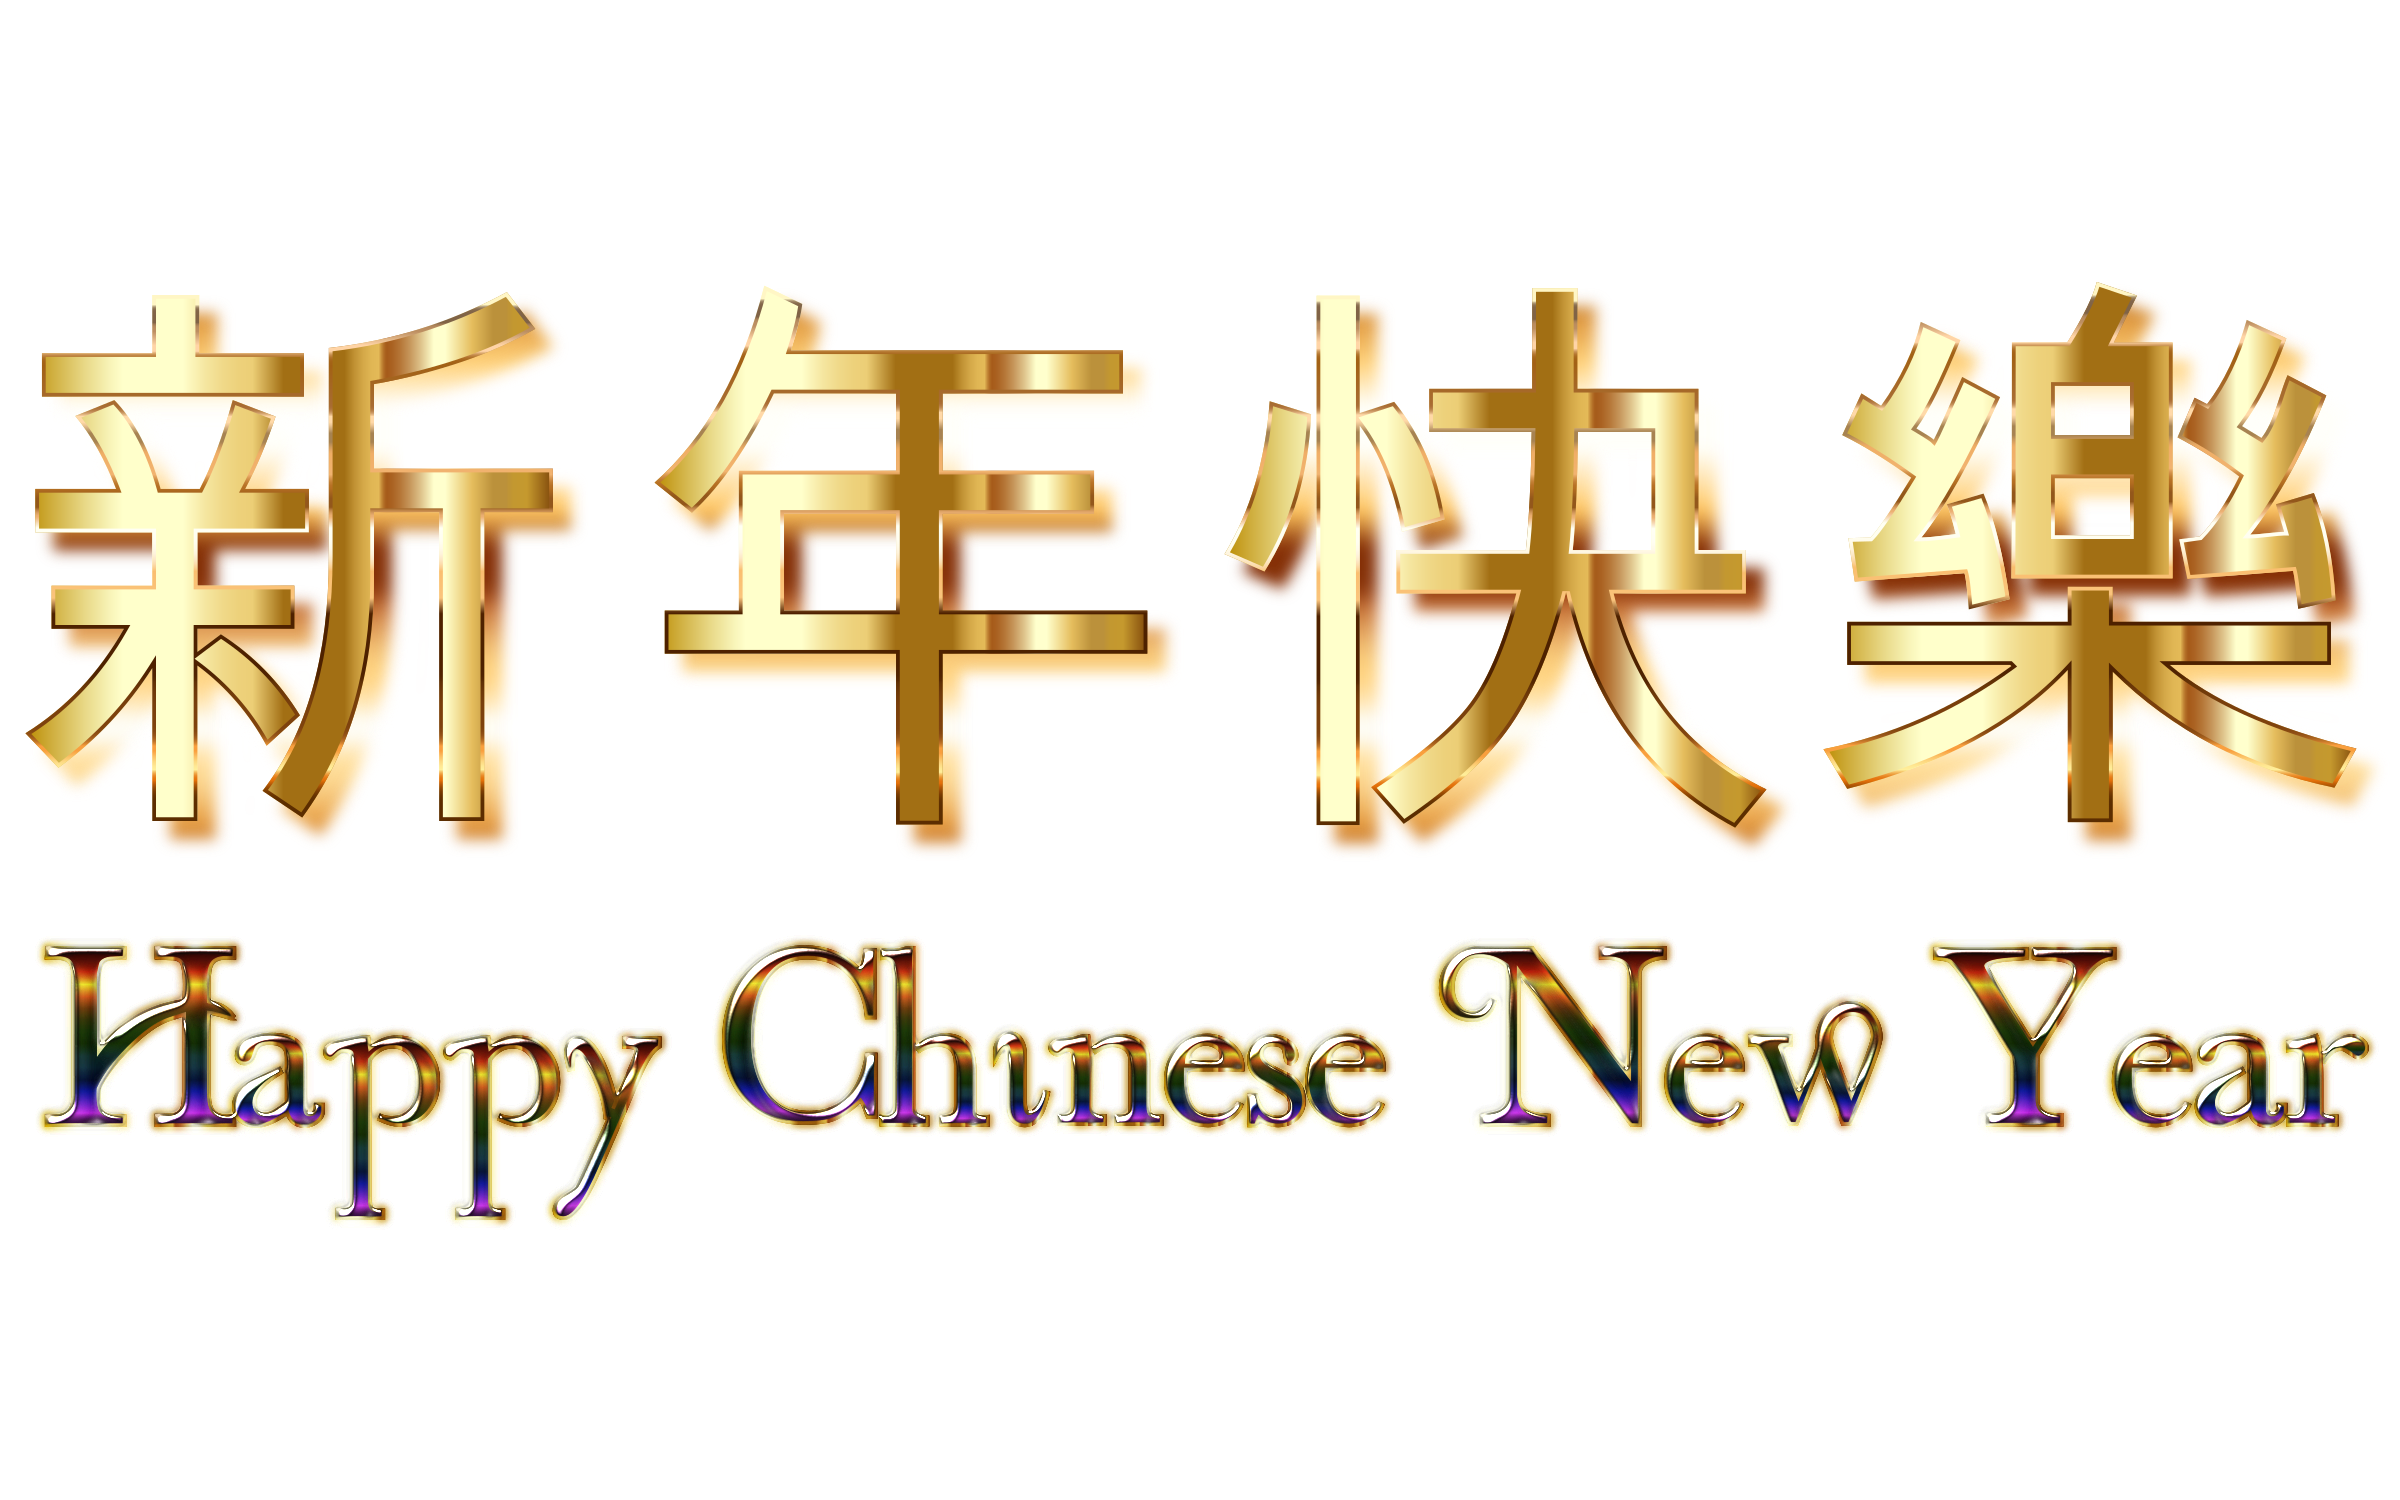 clipart happy chinese new year 2016 enhanced no background